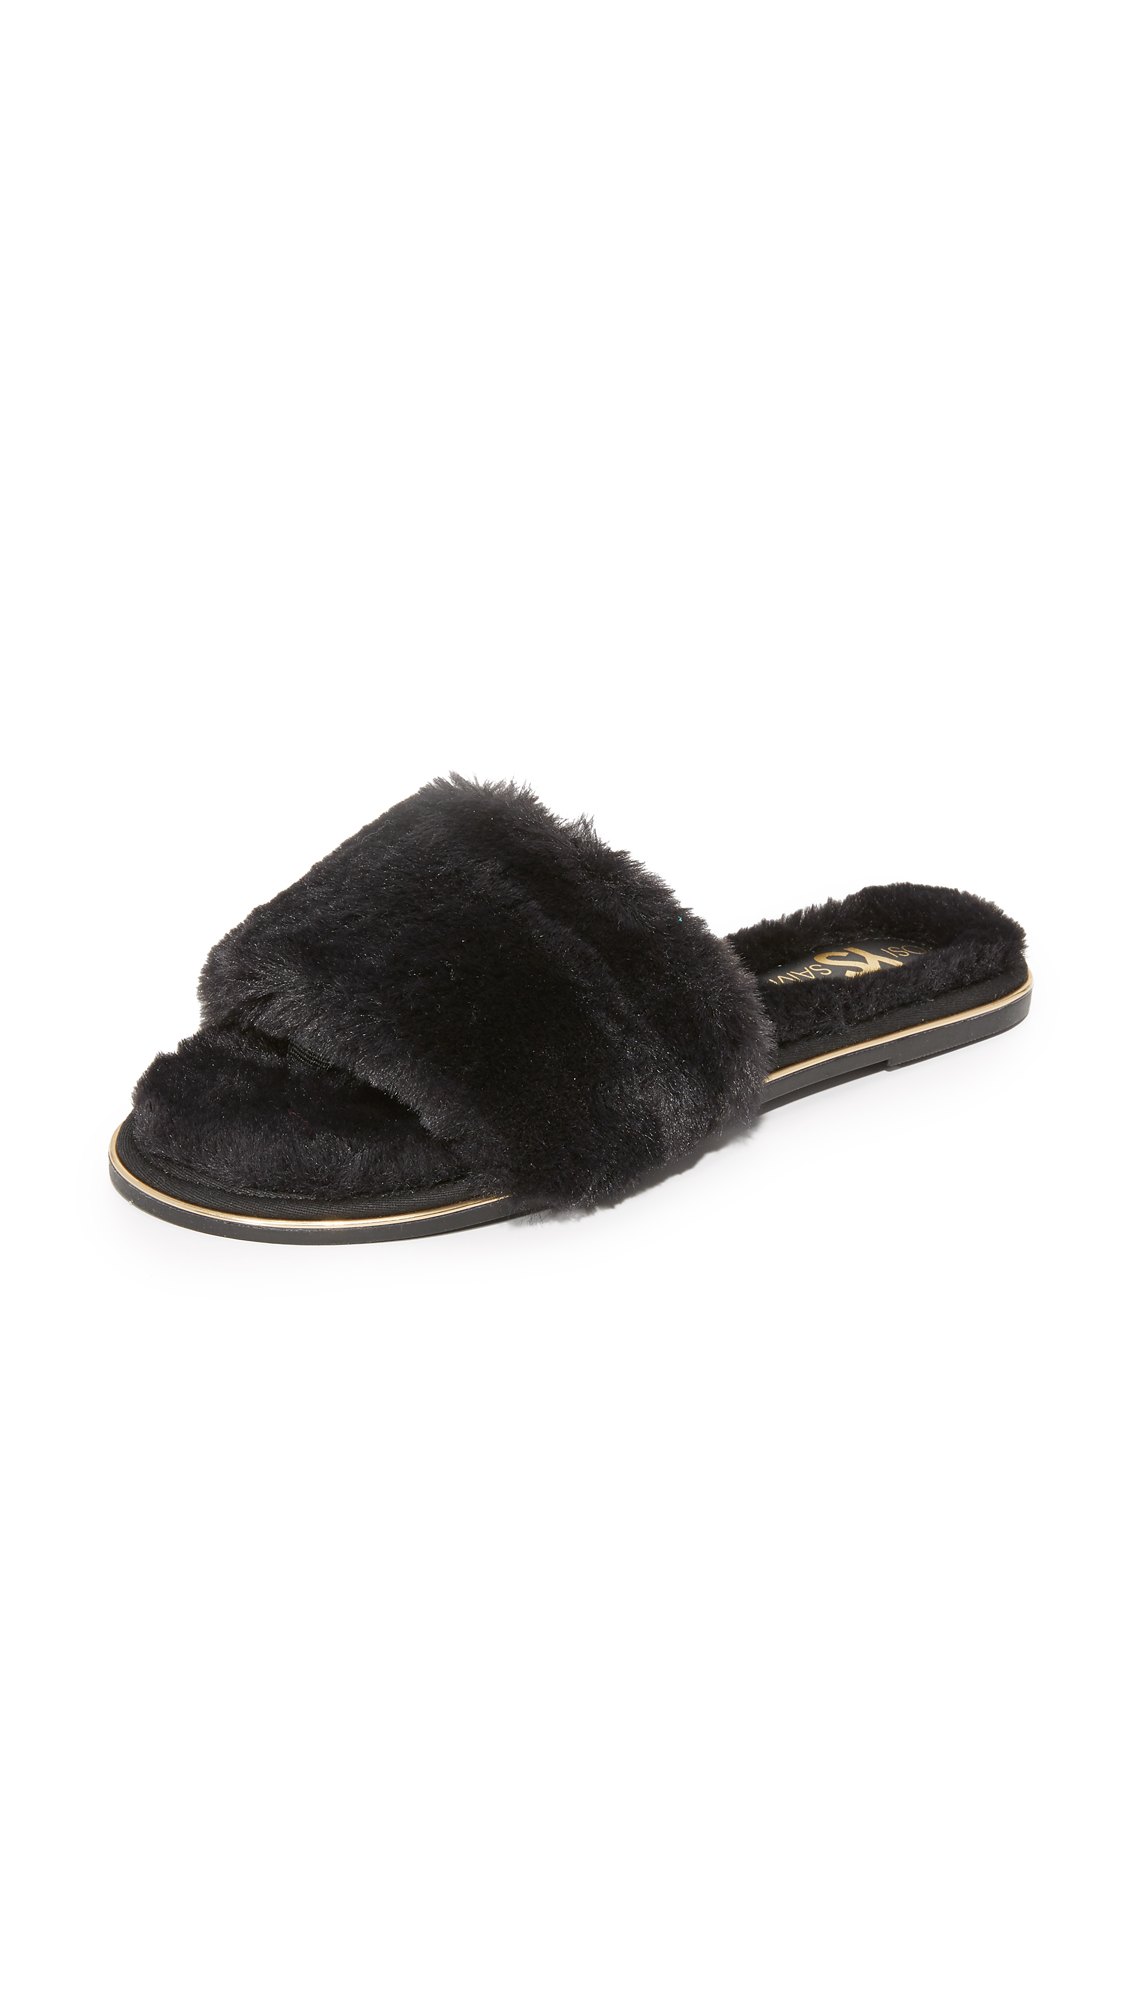 Plush faux fur adds glam appeal to these casual Yosi Samra slides. Hidden toe strap and rubber sole. Fabric: Faux fur. Imported, China. This item cannot be gift boxed. Available sizes: 5,6,10